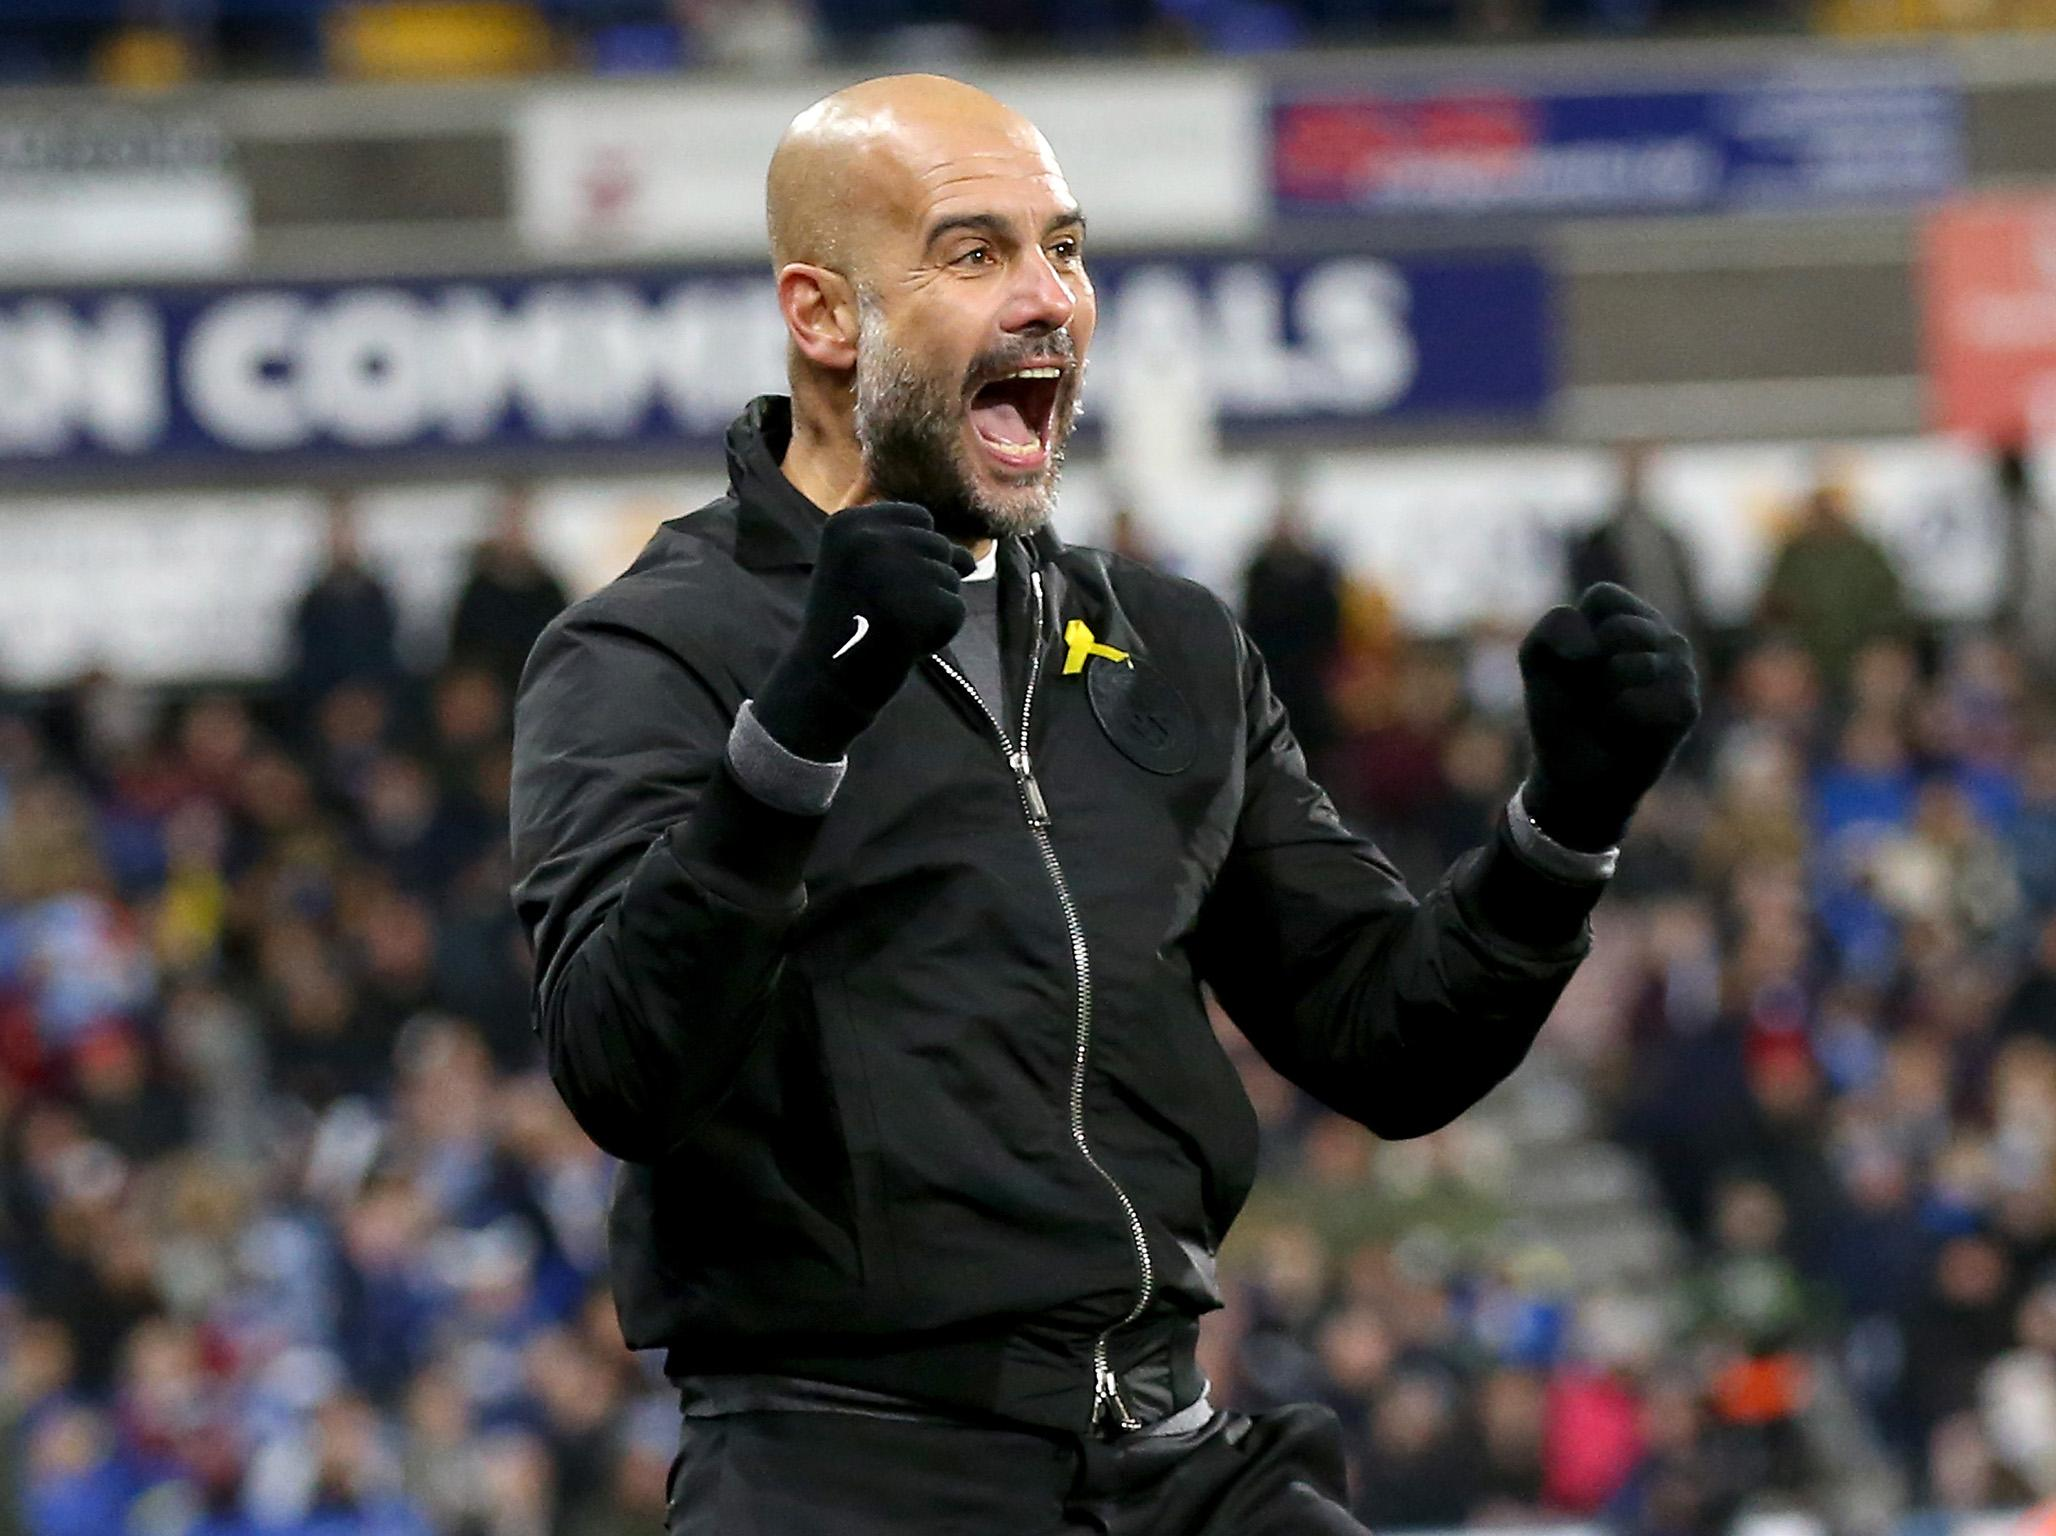 Manchester City's comeback win at Huddersfield Town meant more to Pep Guardiola than their demolitions